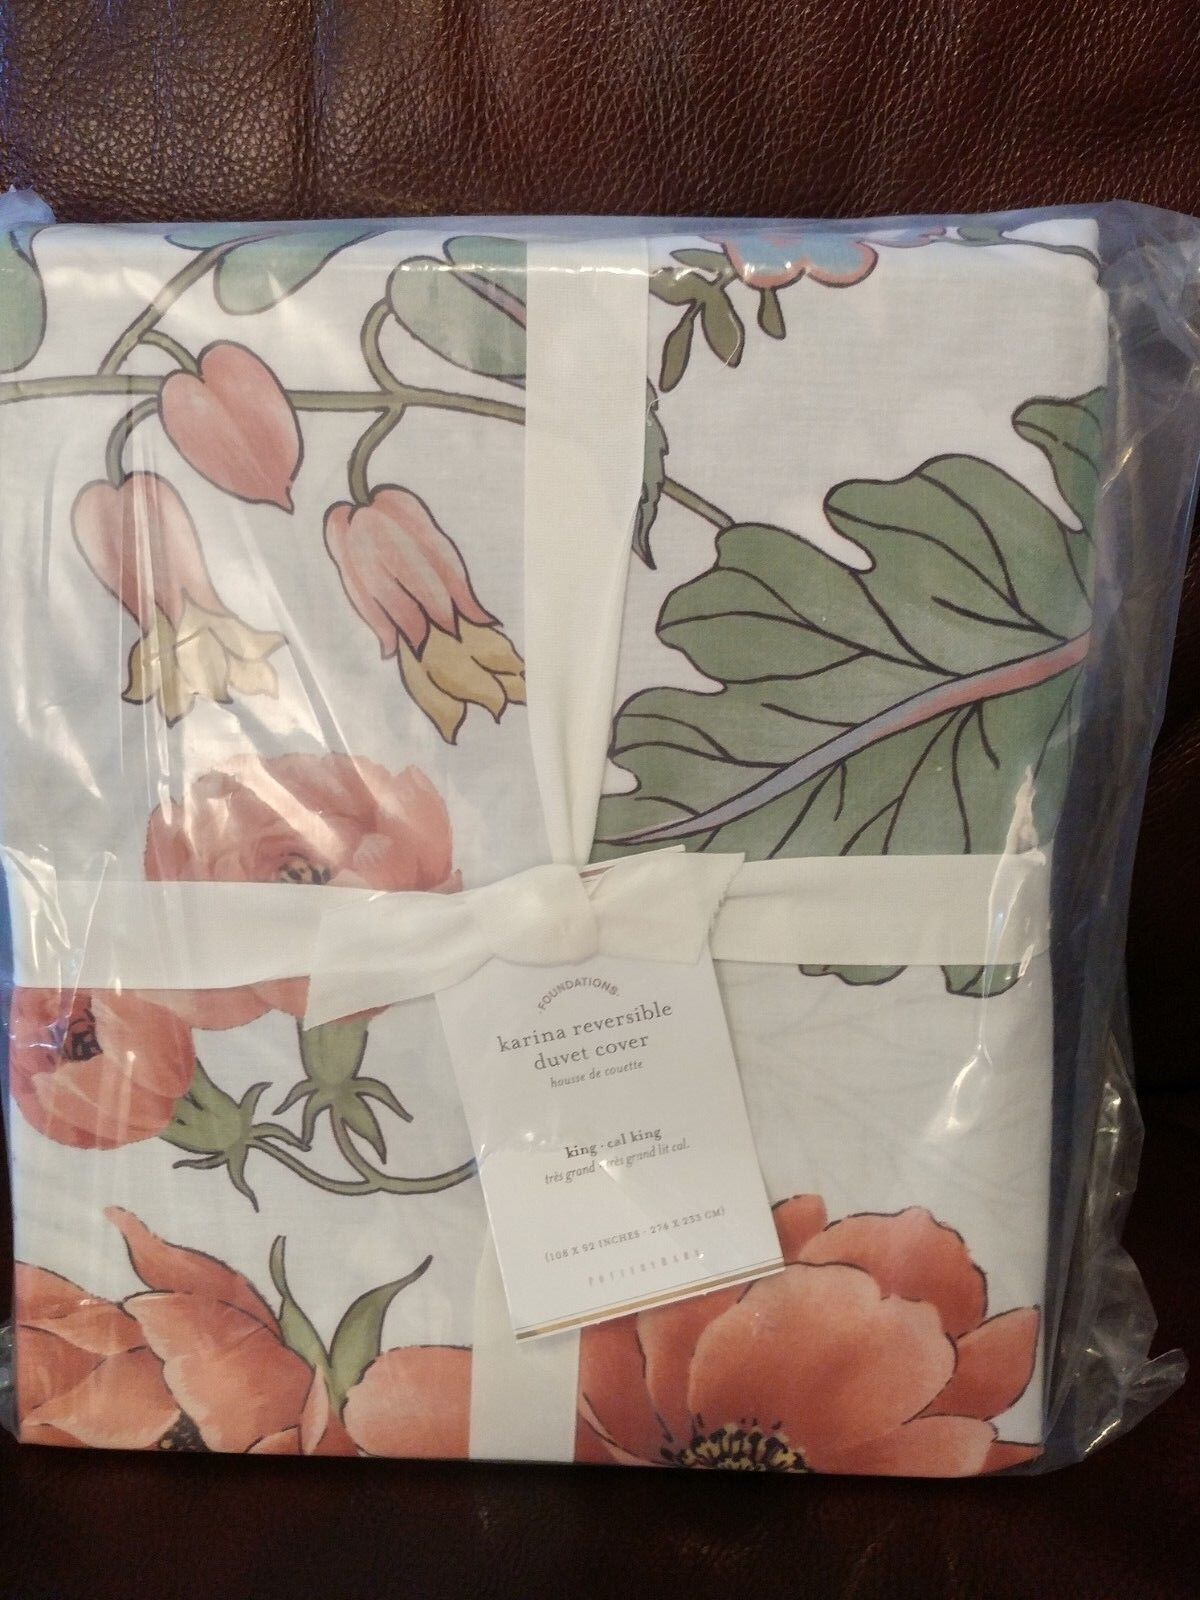 Pottery Barn Multi Couleurs Karina Floral Reversible King Cal King Duvet Cover NWT